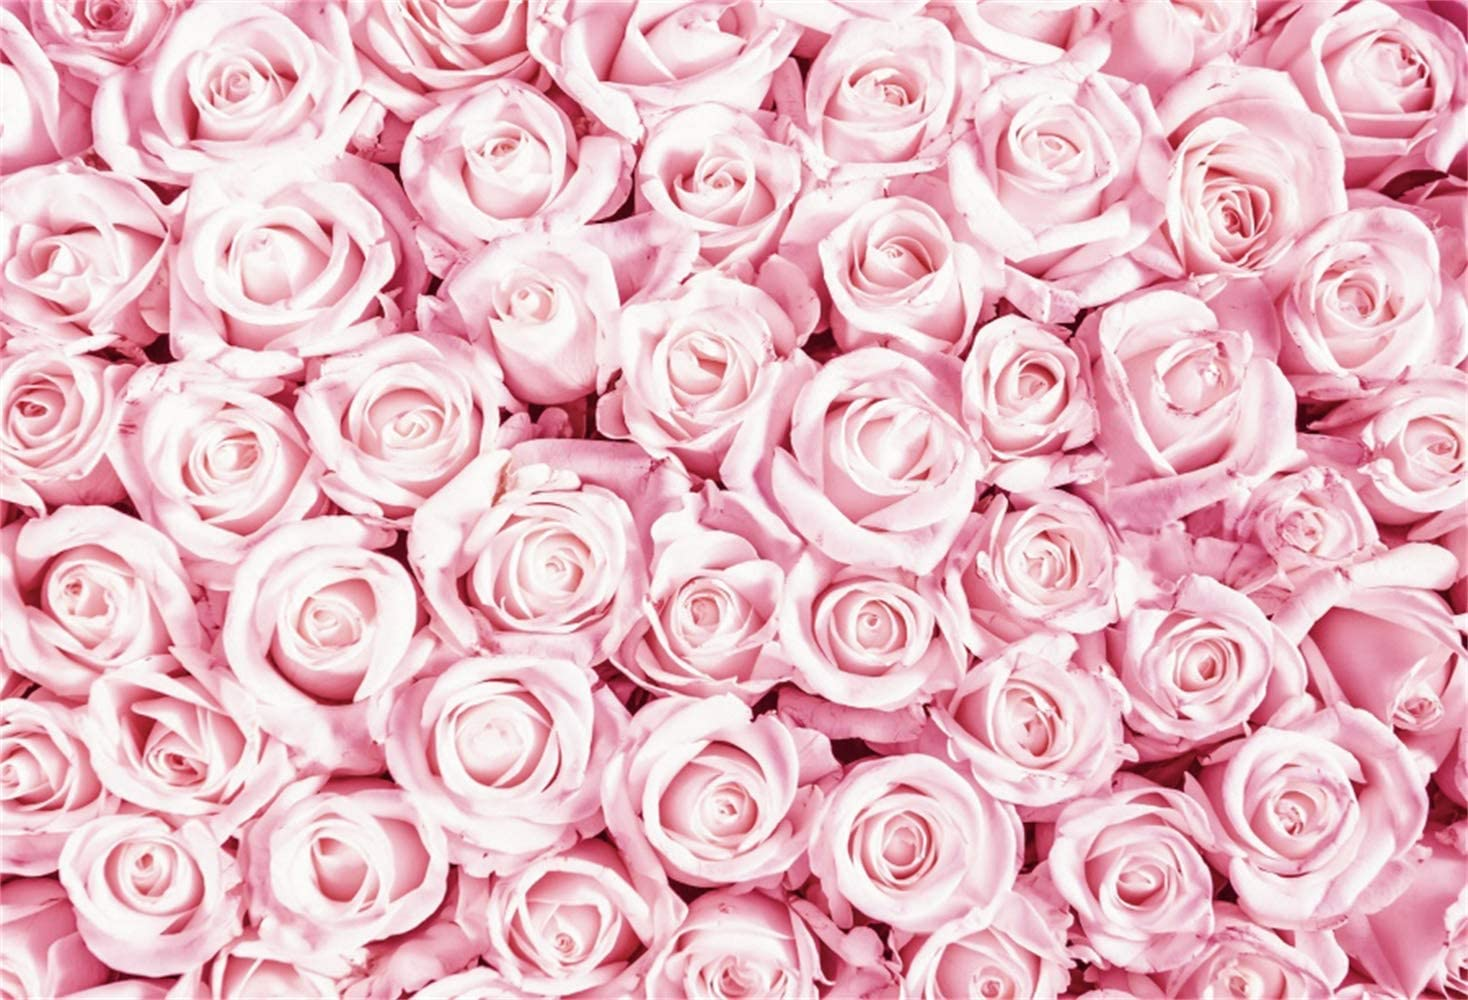 Leowefowa Romantic Pink Rose Flowers Wall Backdrop 12x8ft Vinyl Valentines Day Photography Background Engagment Bridal Party Banner Wedding Lovers Shoot Bridal Shower Proposal Photo Props